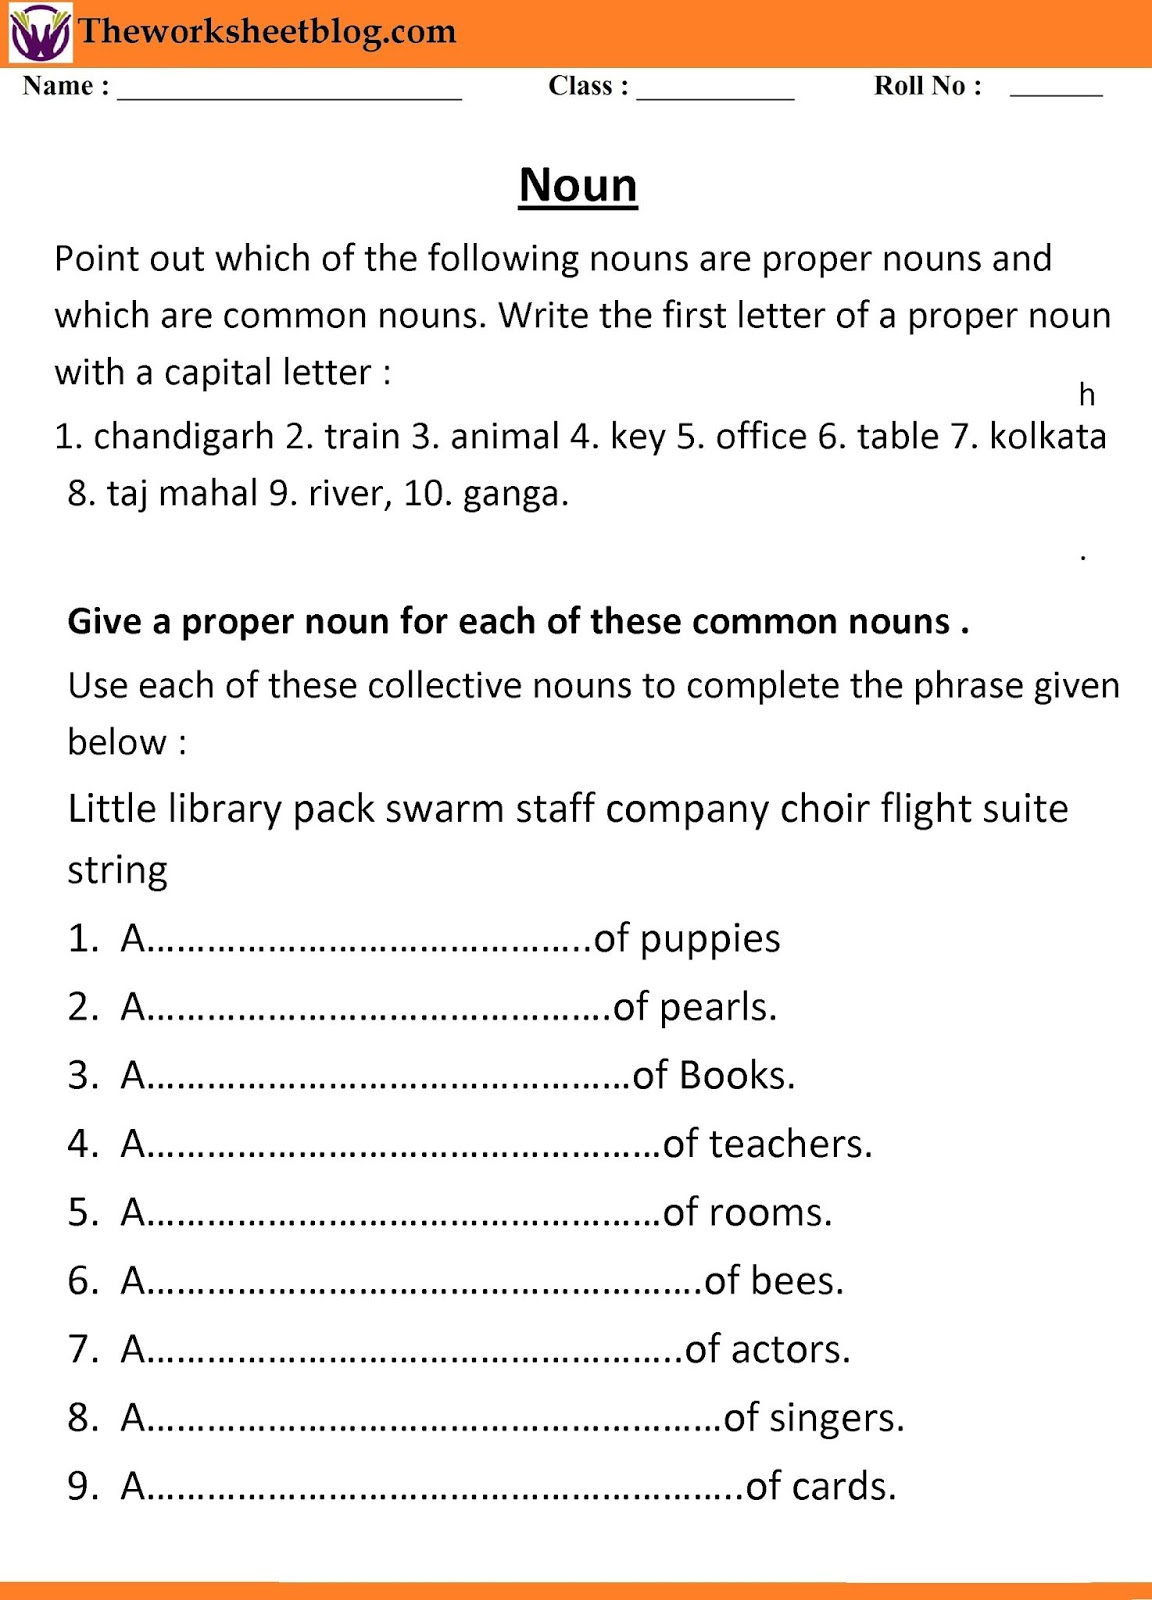 Noun worksheets for Grade 1 and 2. - Theworksheetsblog [ 1600 x 1152 Pixel ]